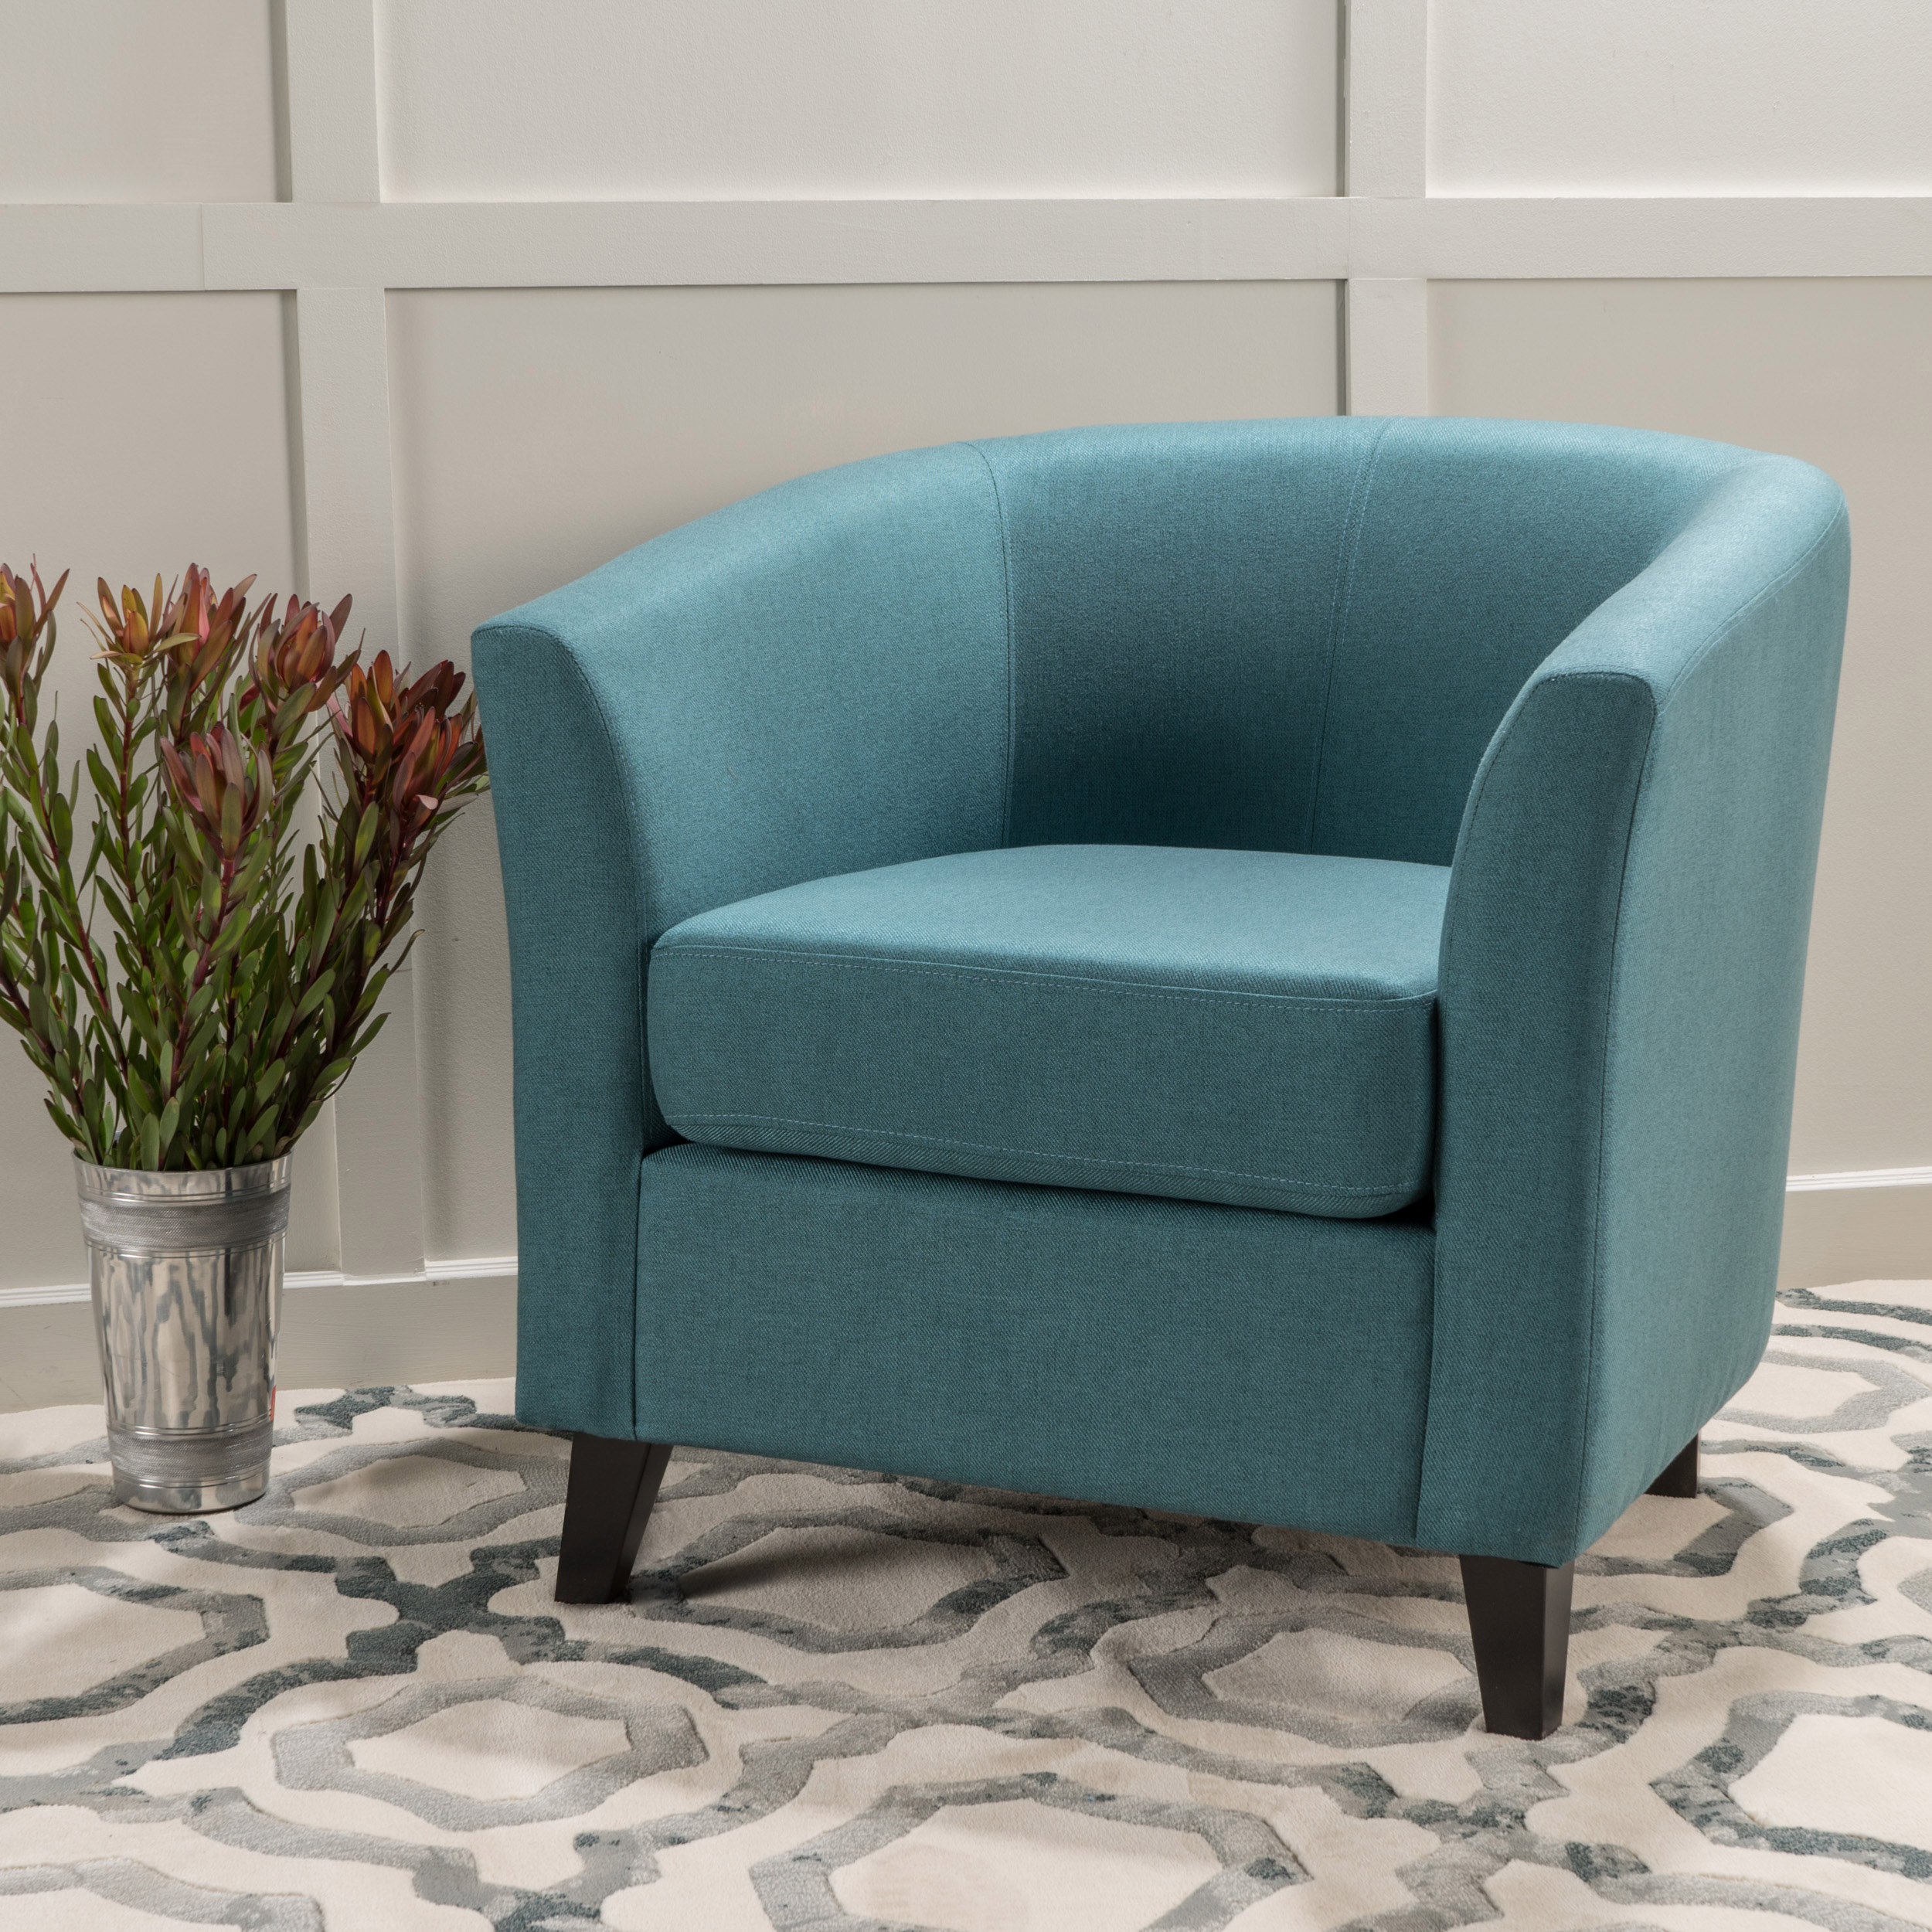 teal club chair big and tall gaming chairs walmart com product image noble house florette tub design fabric dark